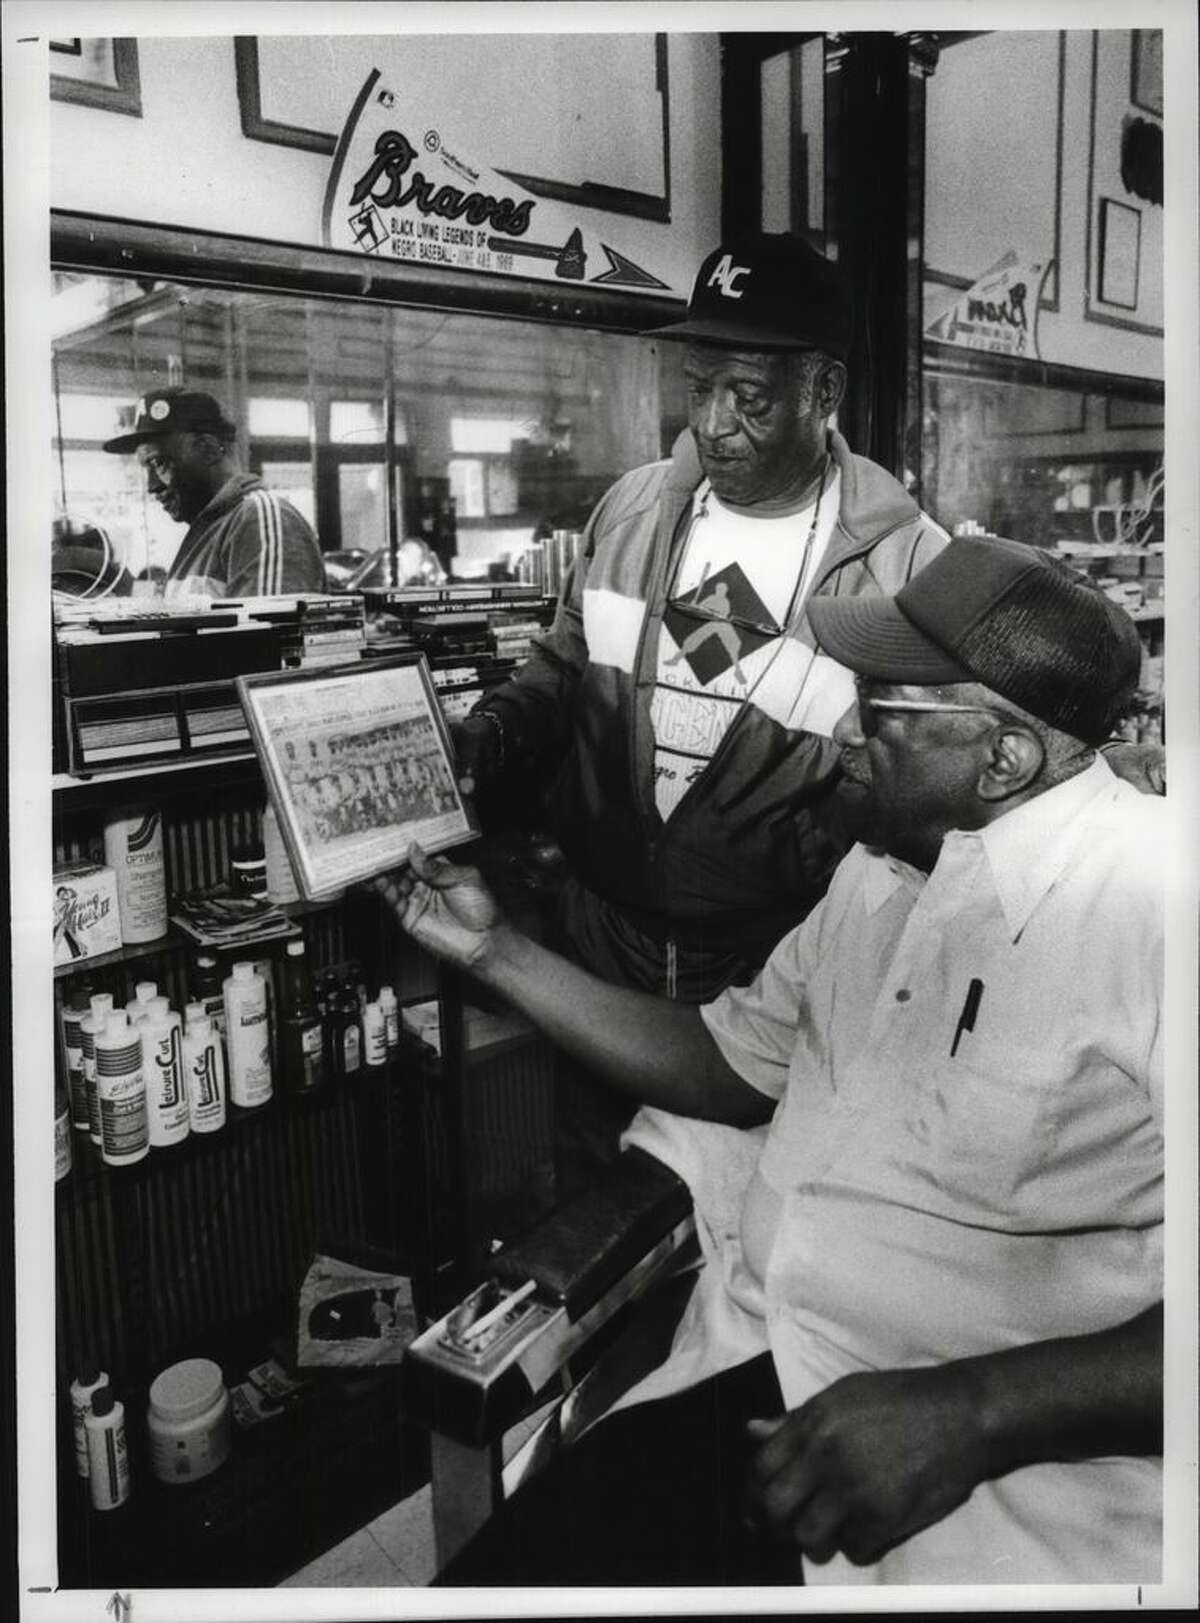 Edsall Walker, standing, shows friend Willie Brand a photograph of the old team, the Homestead Grays on June 21, 1990, at the Wisteria Barber Shop, 323 S. Pearl St. in Albany. (Paul D. Kniskern Sr./Times Union Archive)